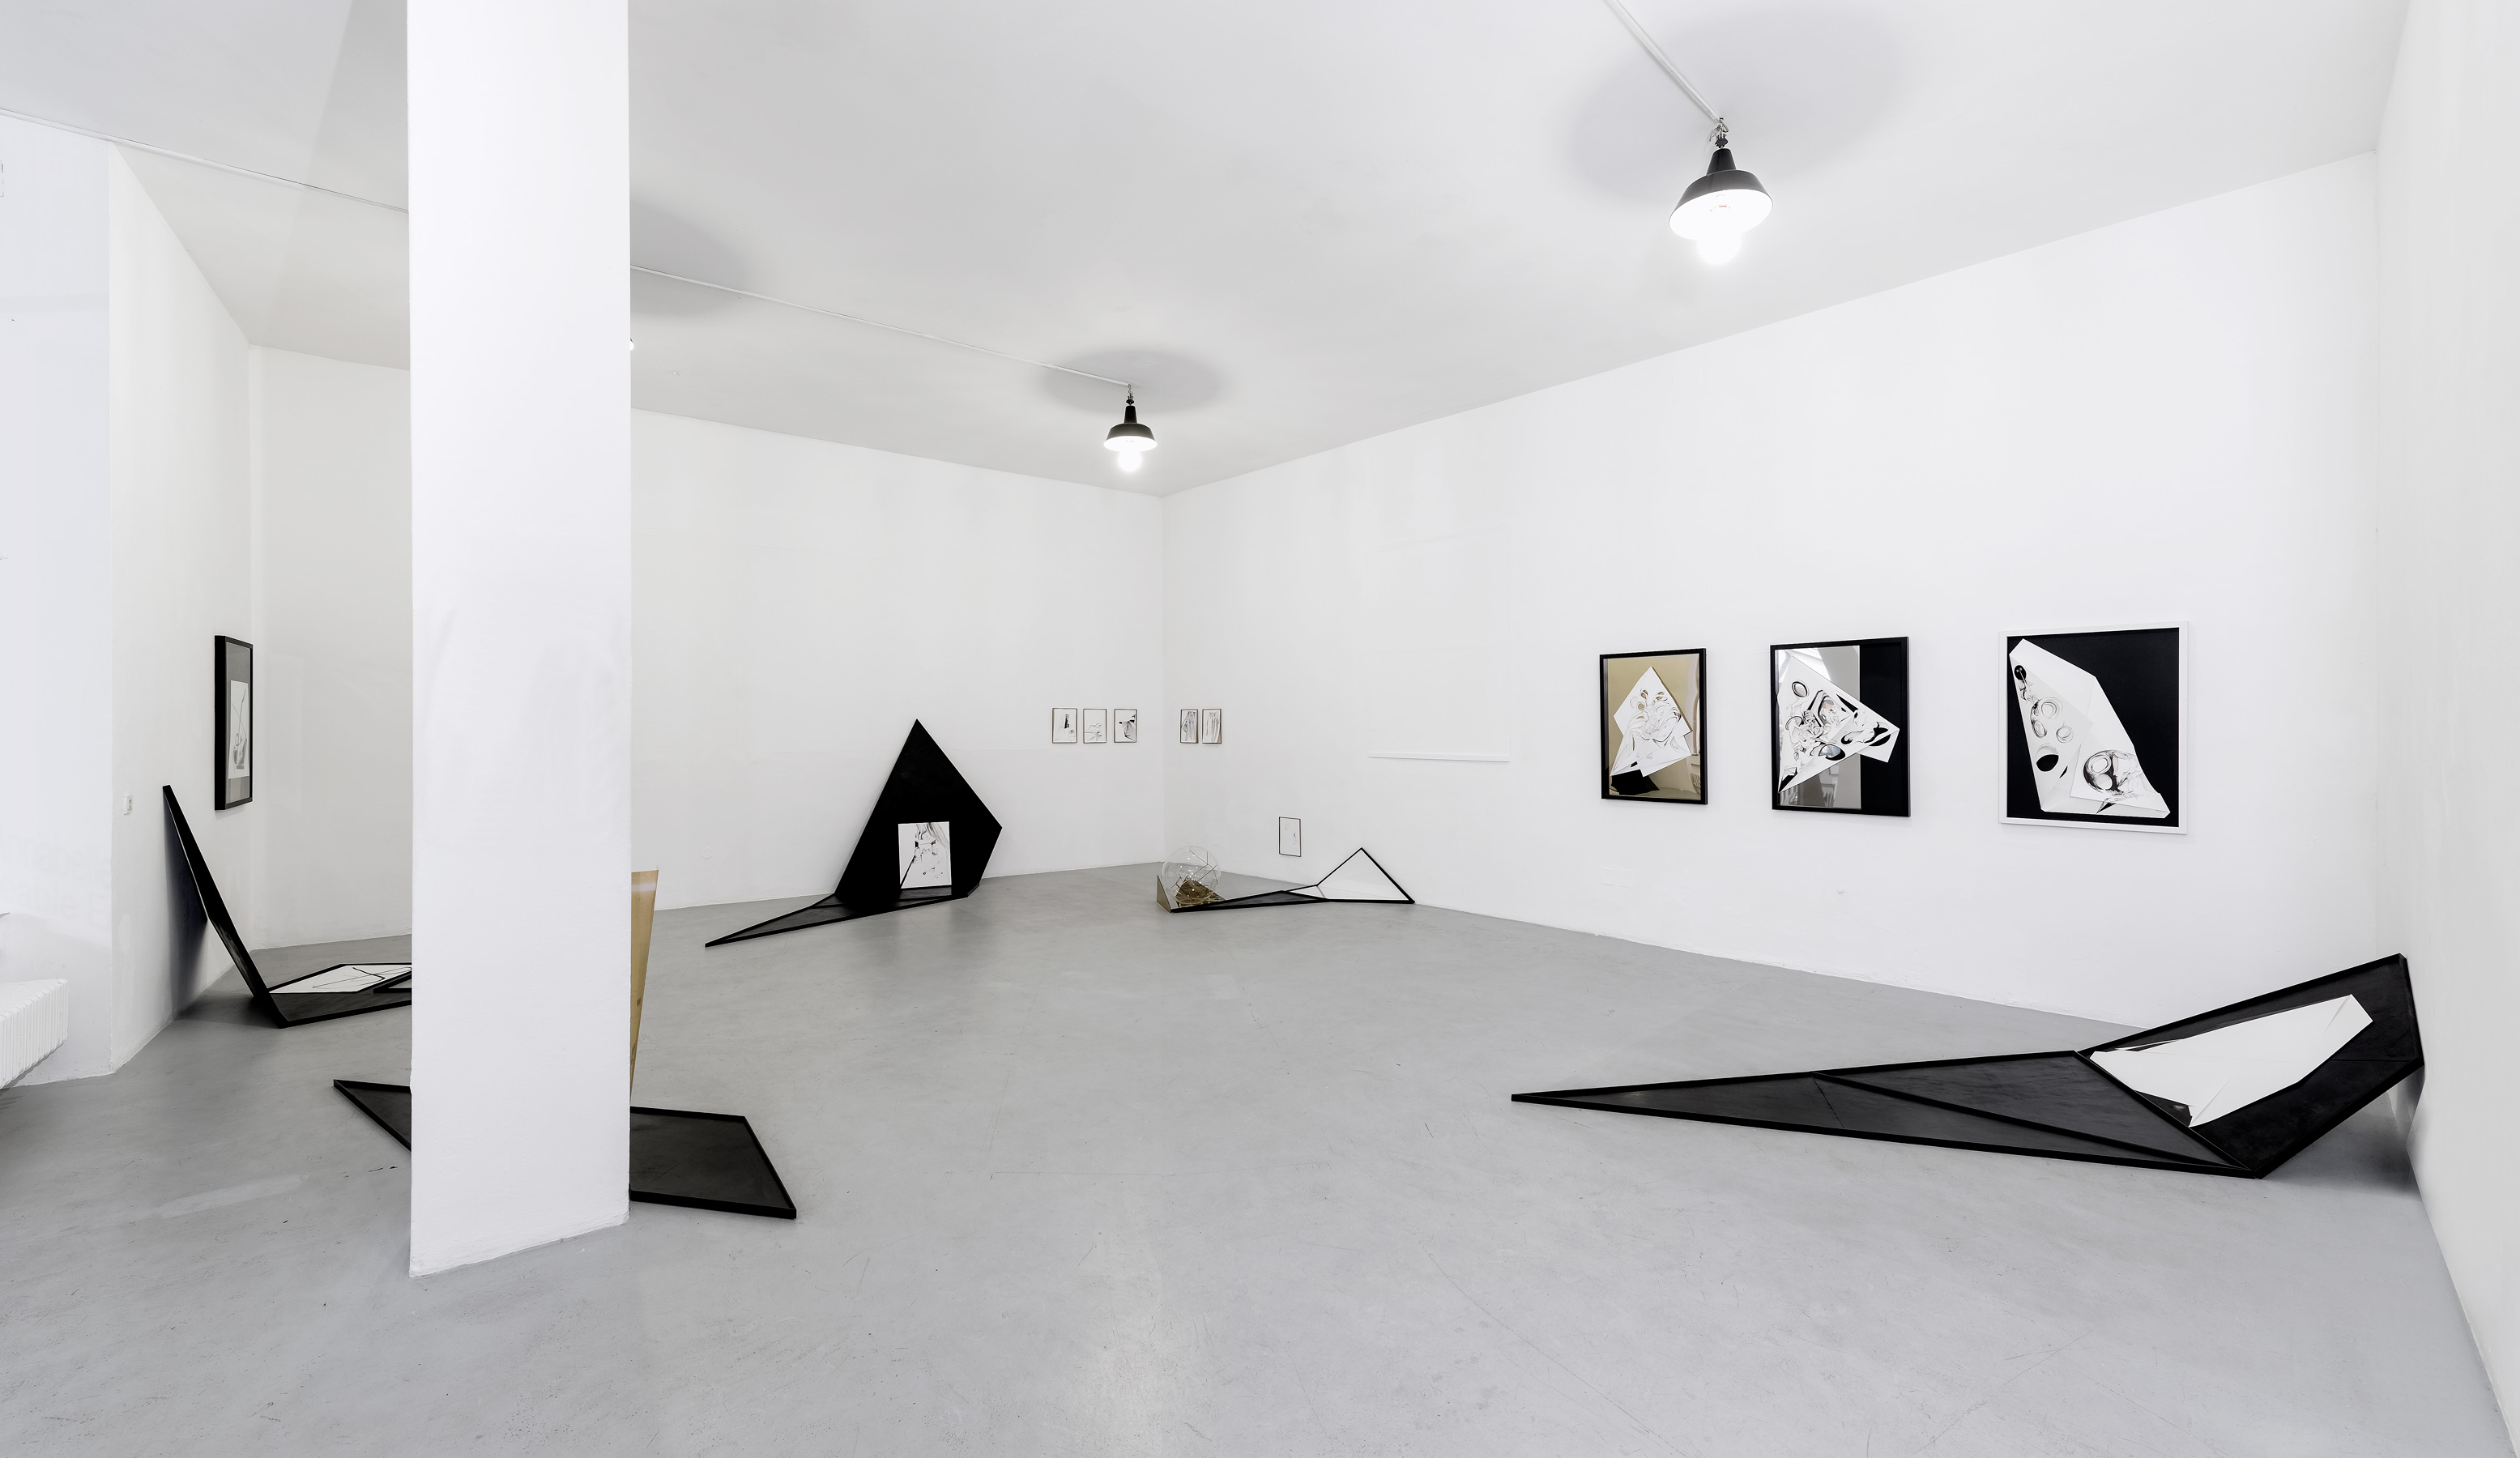 Nina Annabelle Maerkl, Frames, 2018, Installation view, Gallery of the artists Munich, welded steel, ink on paper, cutouts, 250 x 800 x 30 cm, each about 220 x 100 x 30 cm.